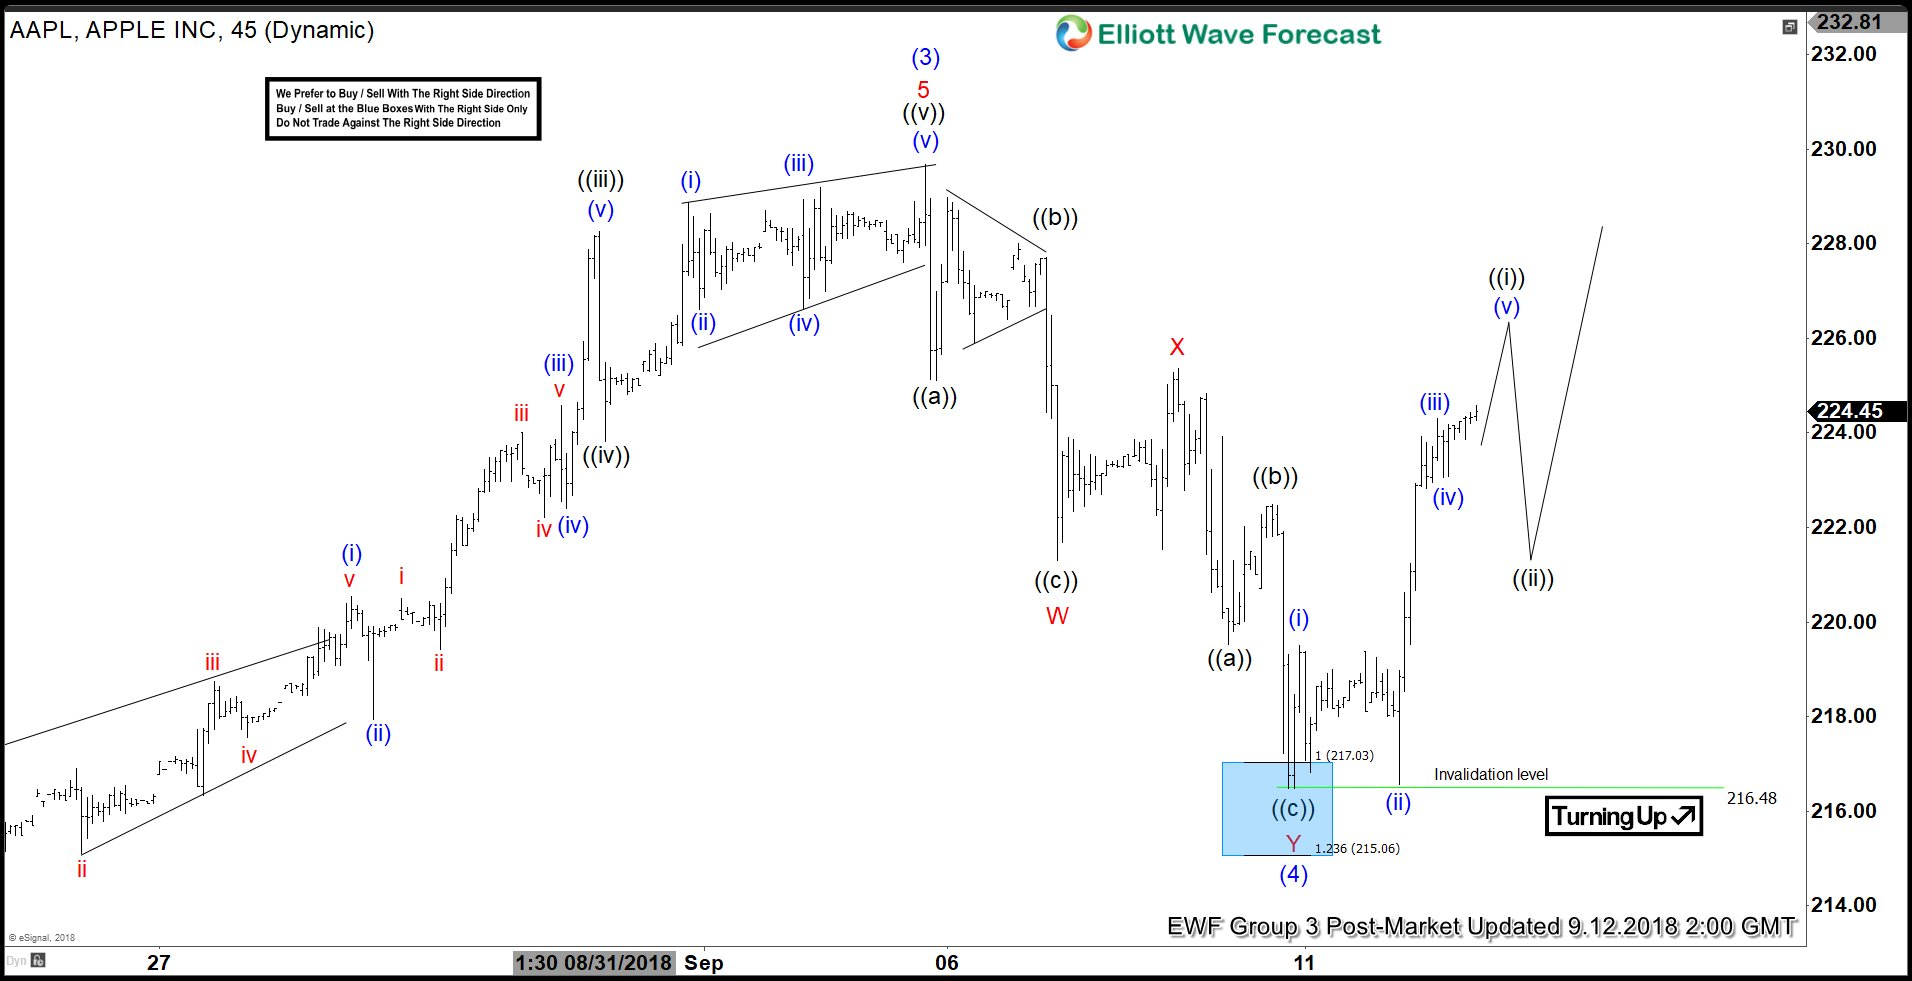 AAPL Elliott Wave View: Ready For Wave 5 Higher?